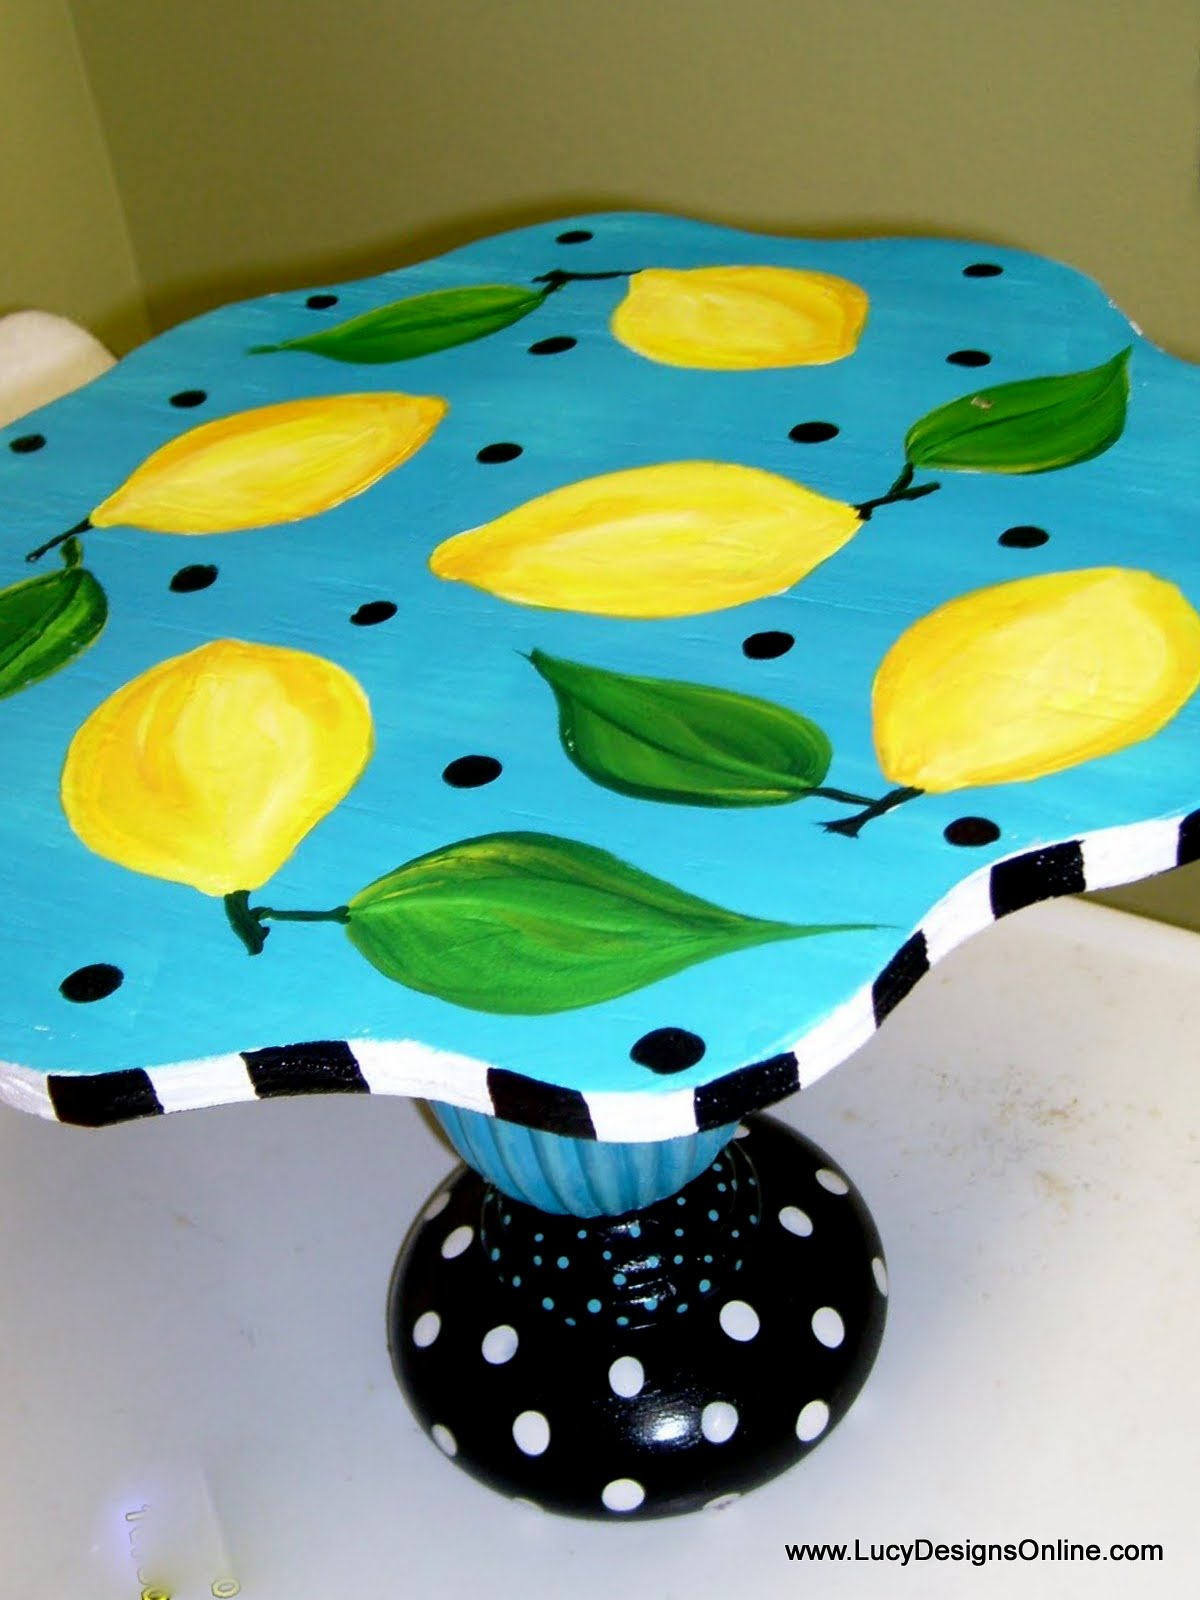 hand painted lemon and leaves cake plate